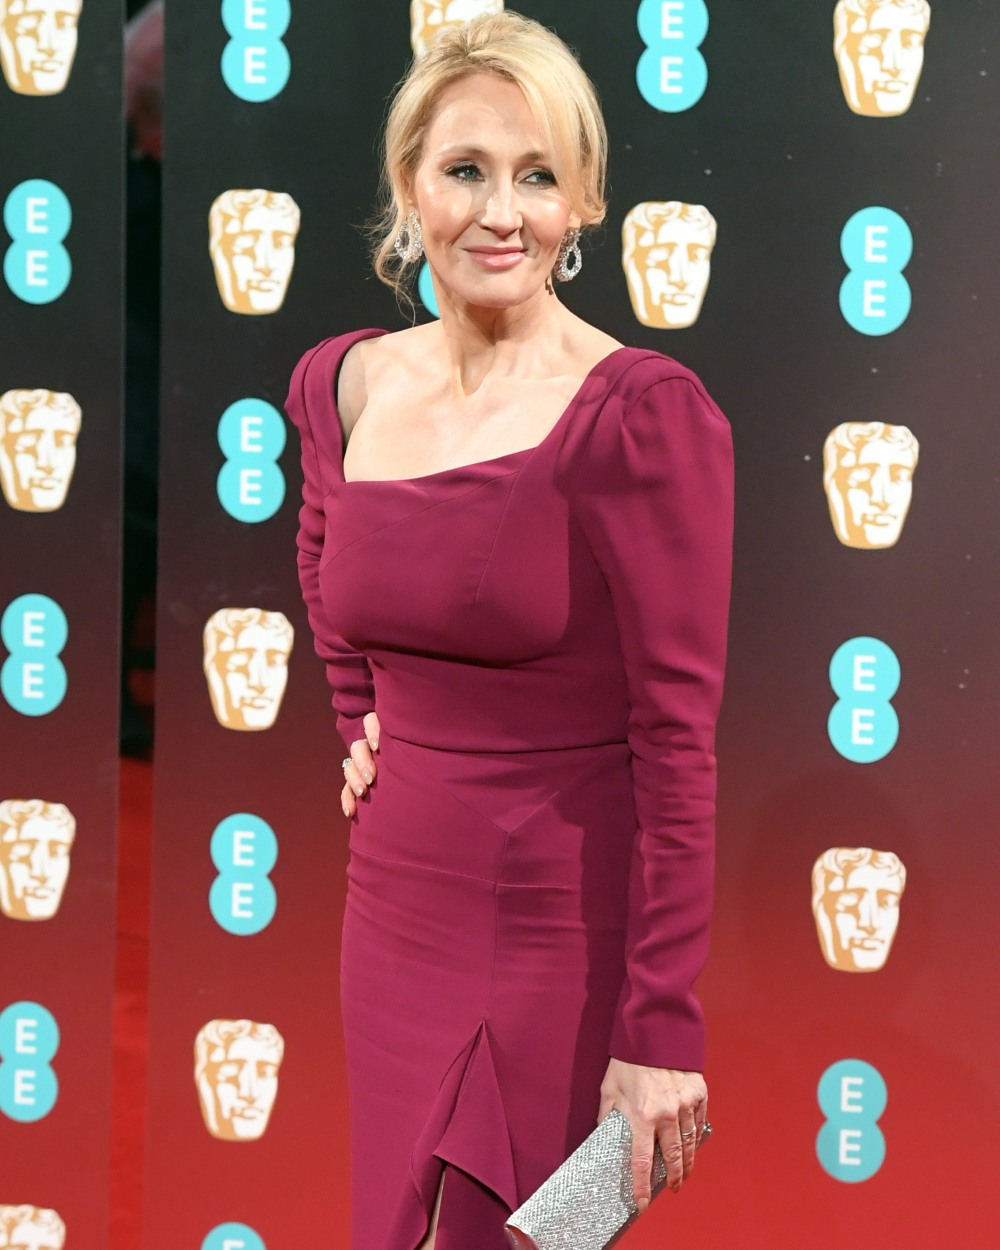 2017 BAFTA Awards - Arrivals